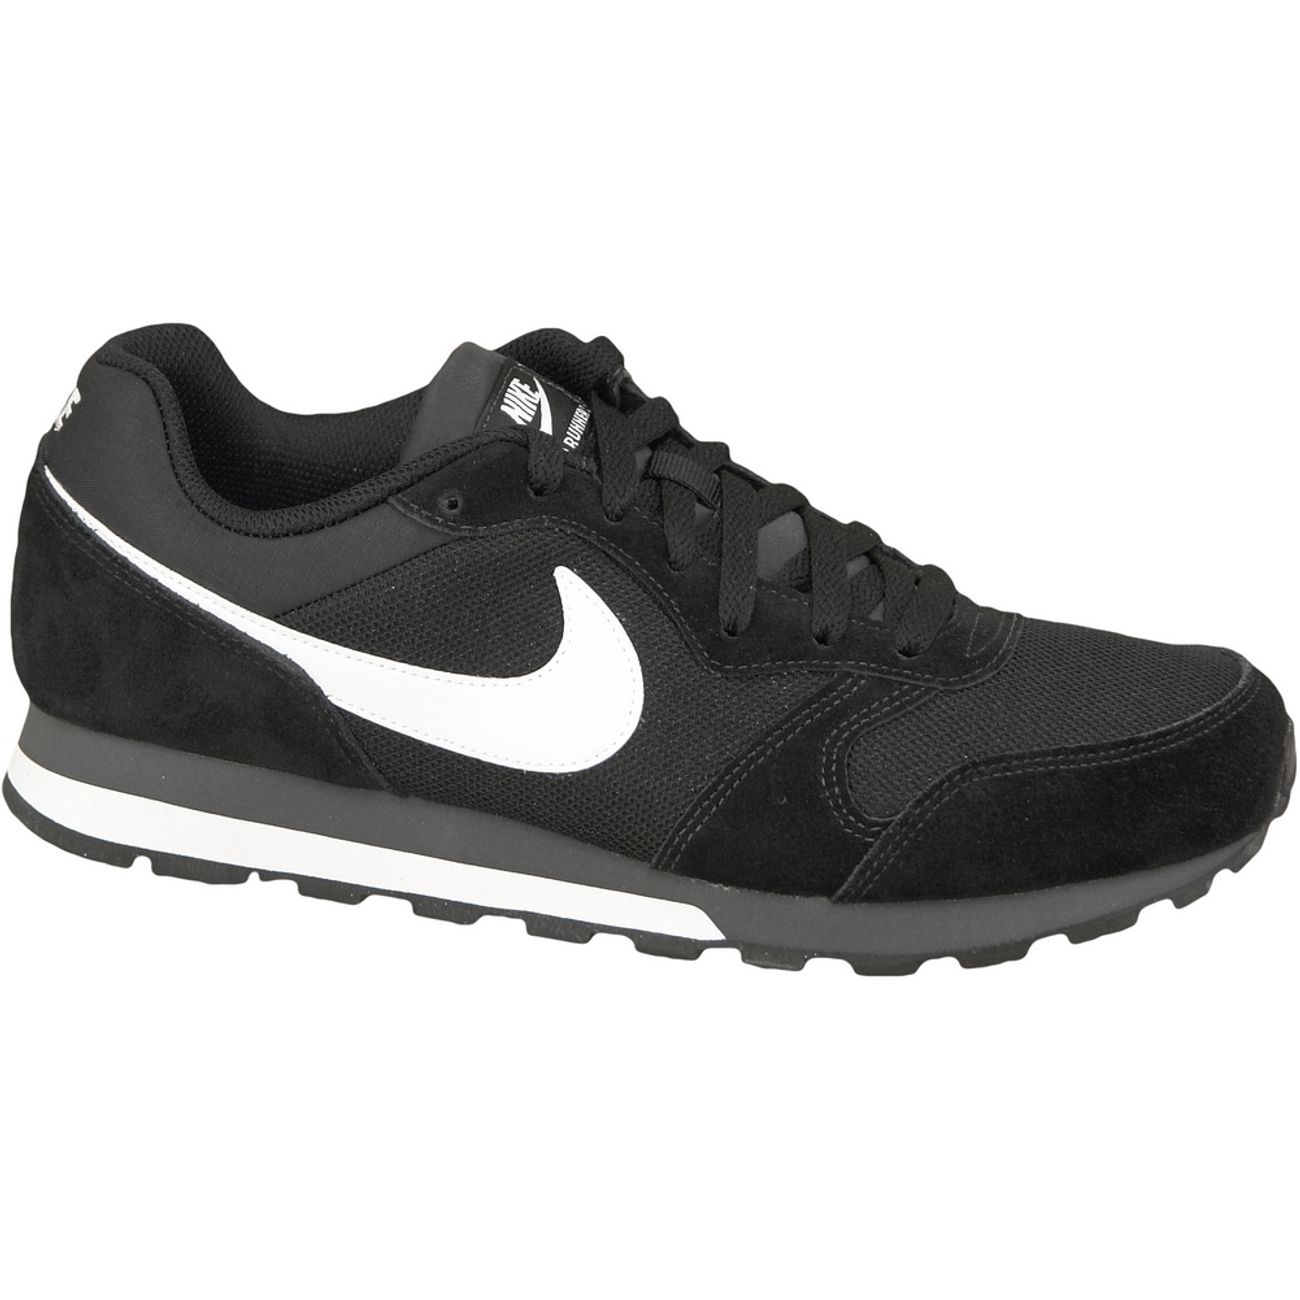 Mode- Lifestyle homme NIKE Nike MD Runner II  749794-010 H Baskets Noir